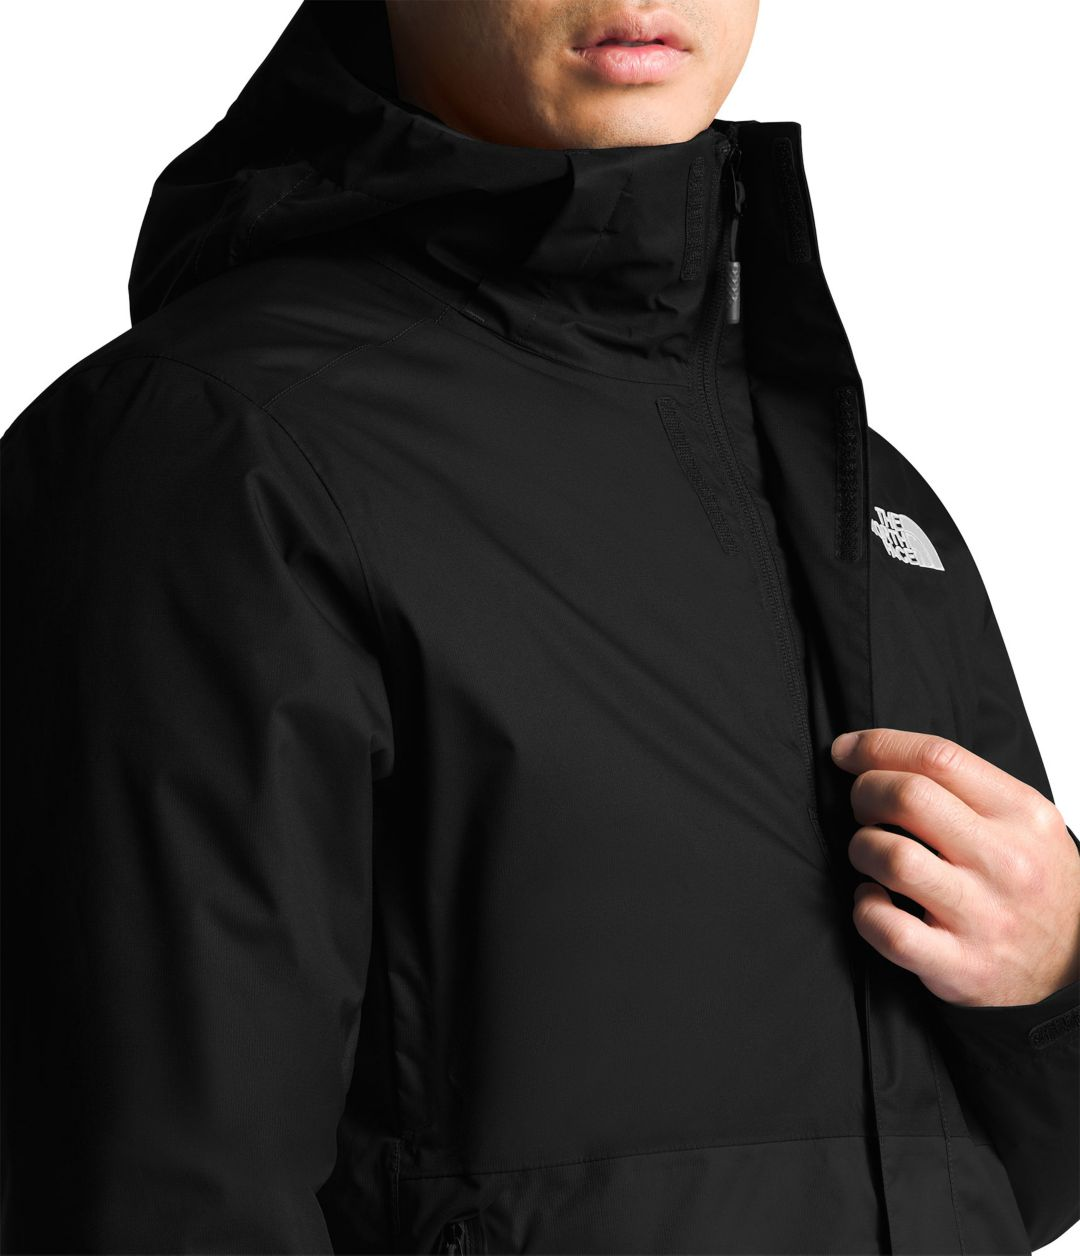 9df7f7021 The North Face Men's Altier Triclimate Jacket